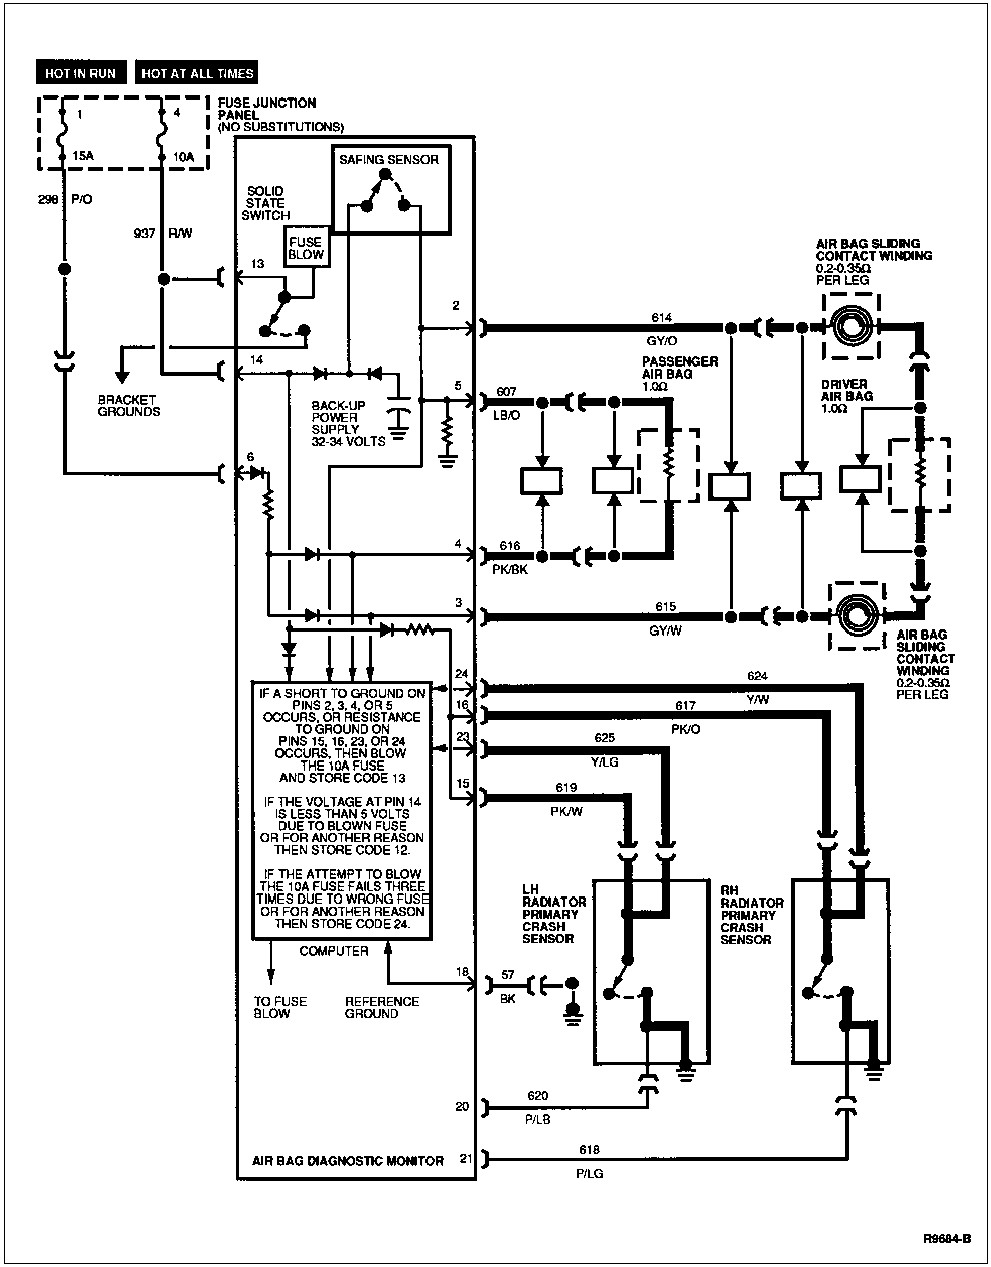 98 mustang gt motor diagram wiring diagram and fuse box